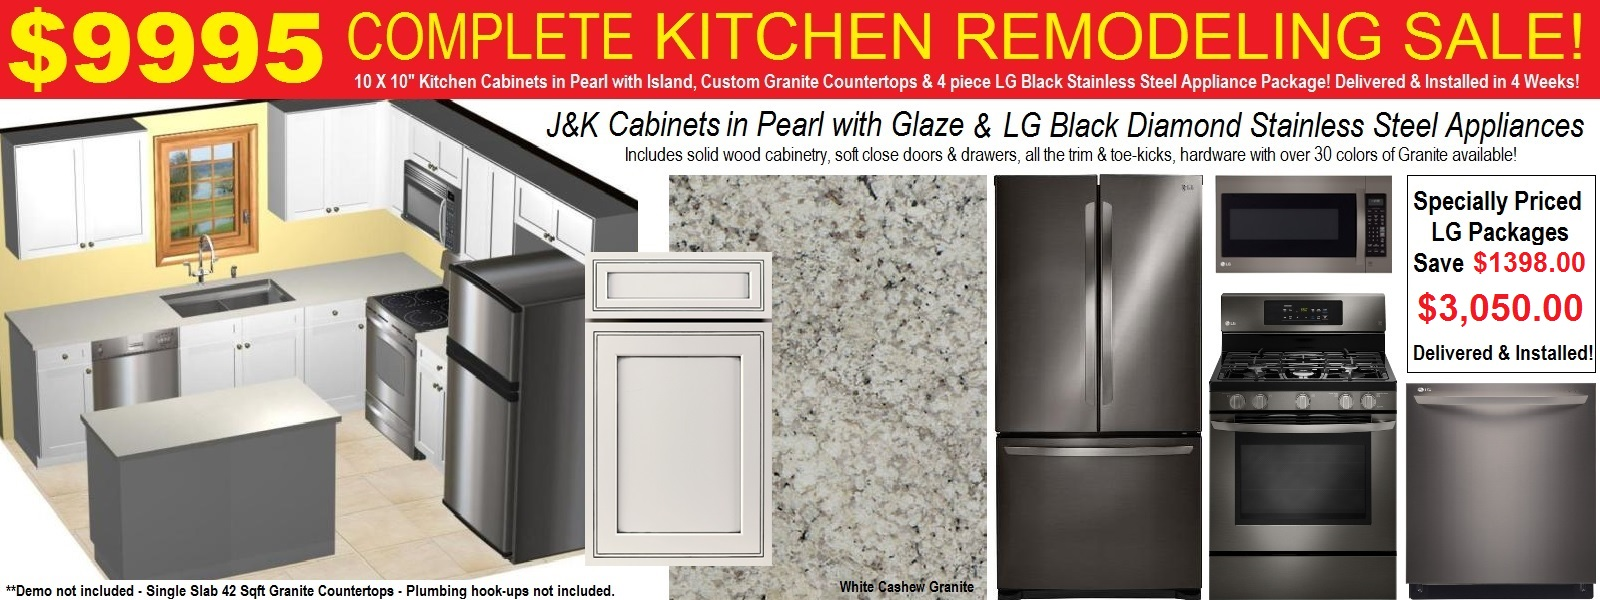 Discount Kitchen Cabinets Countertops Appliances